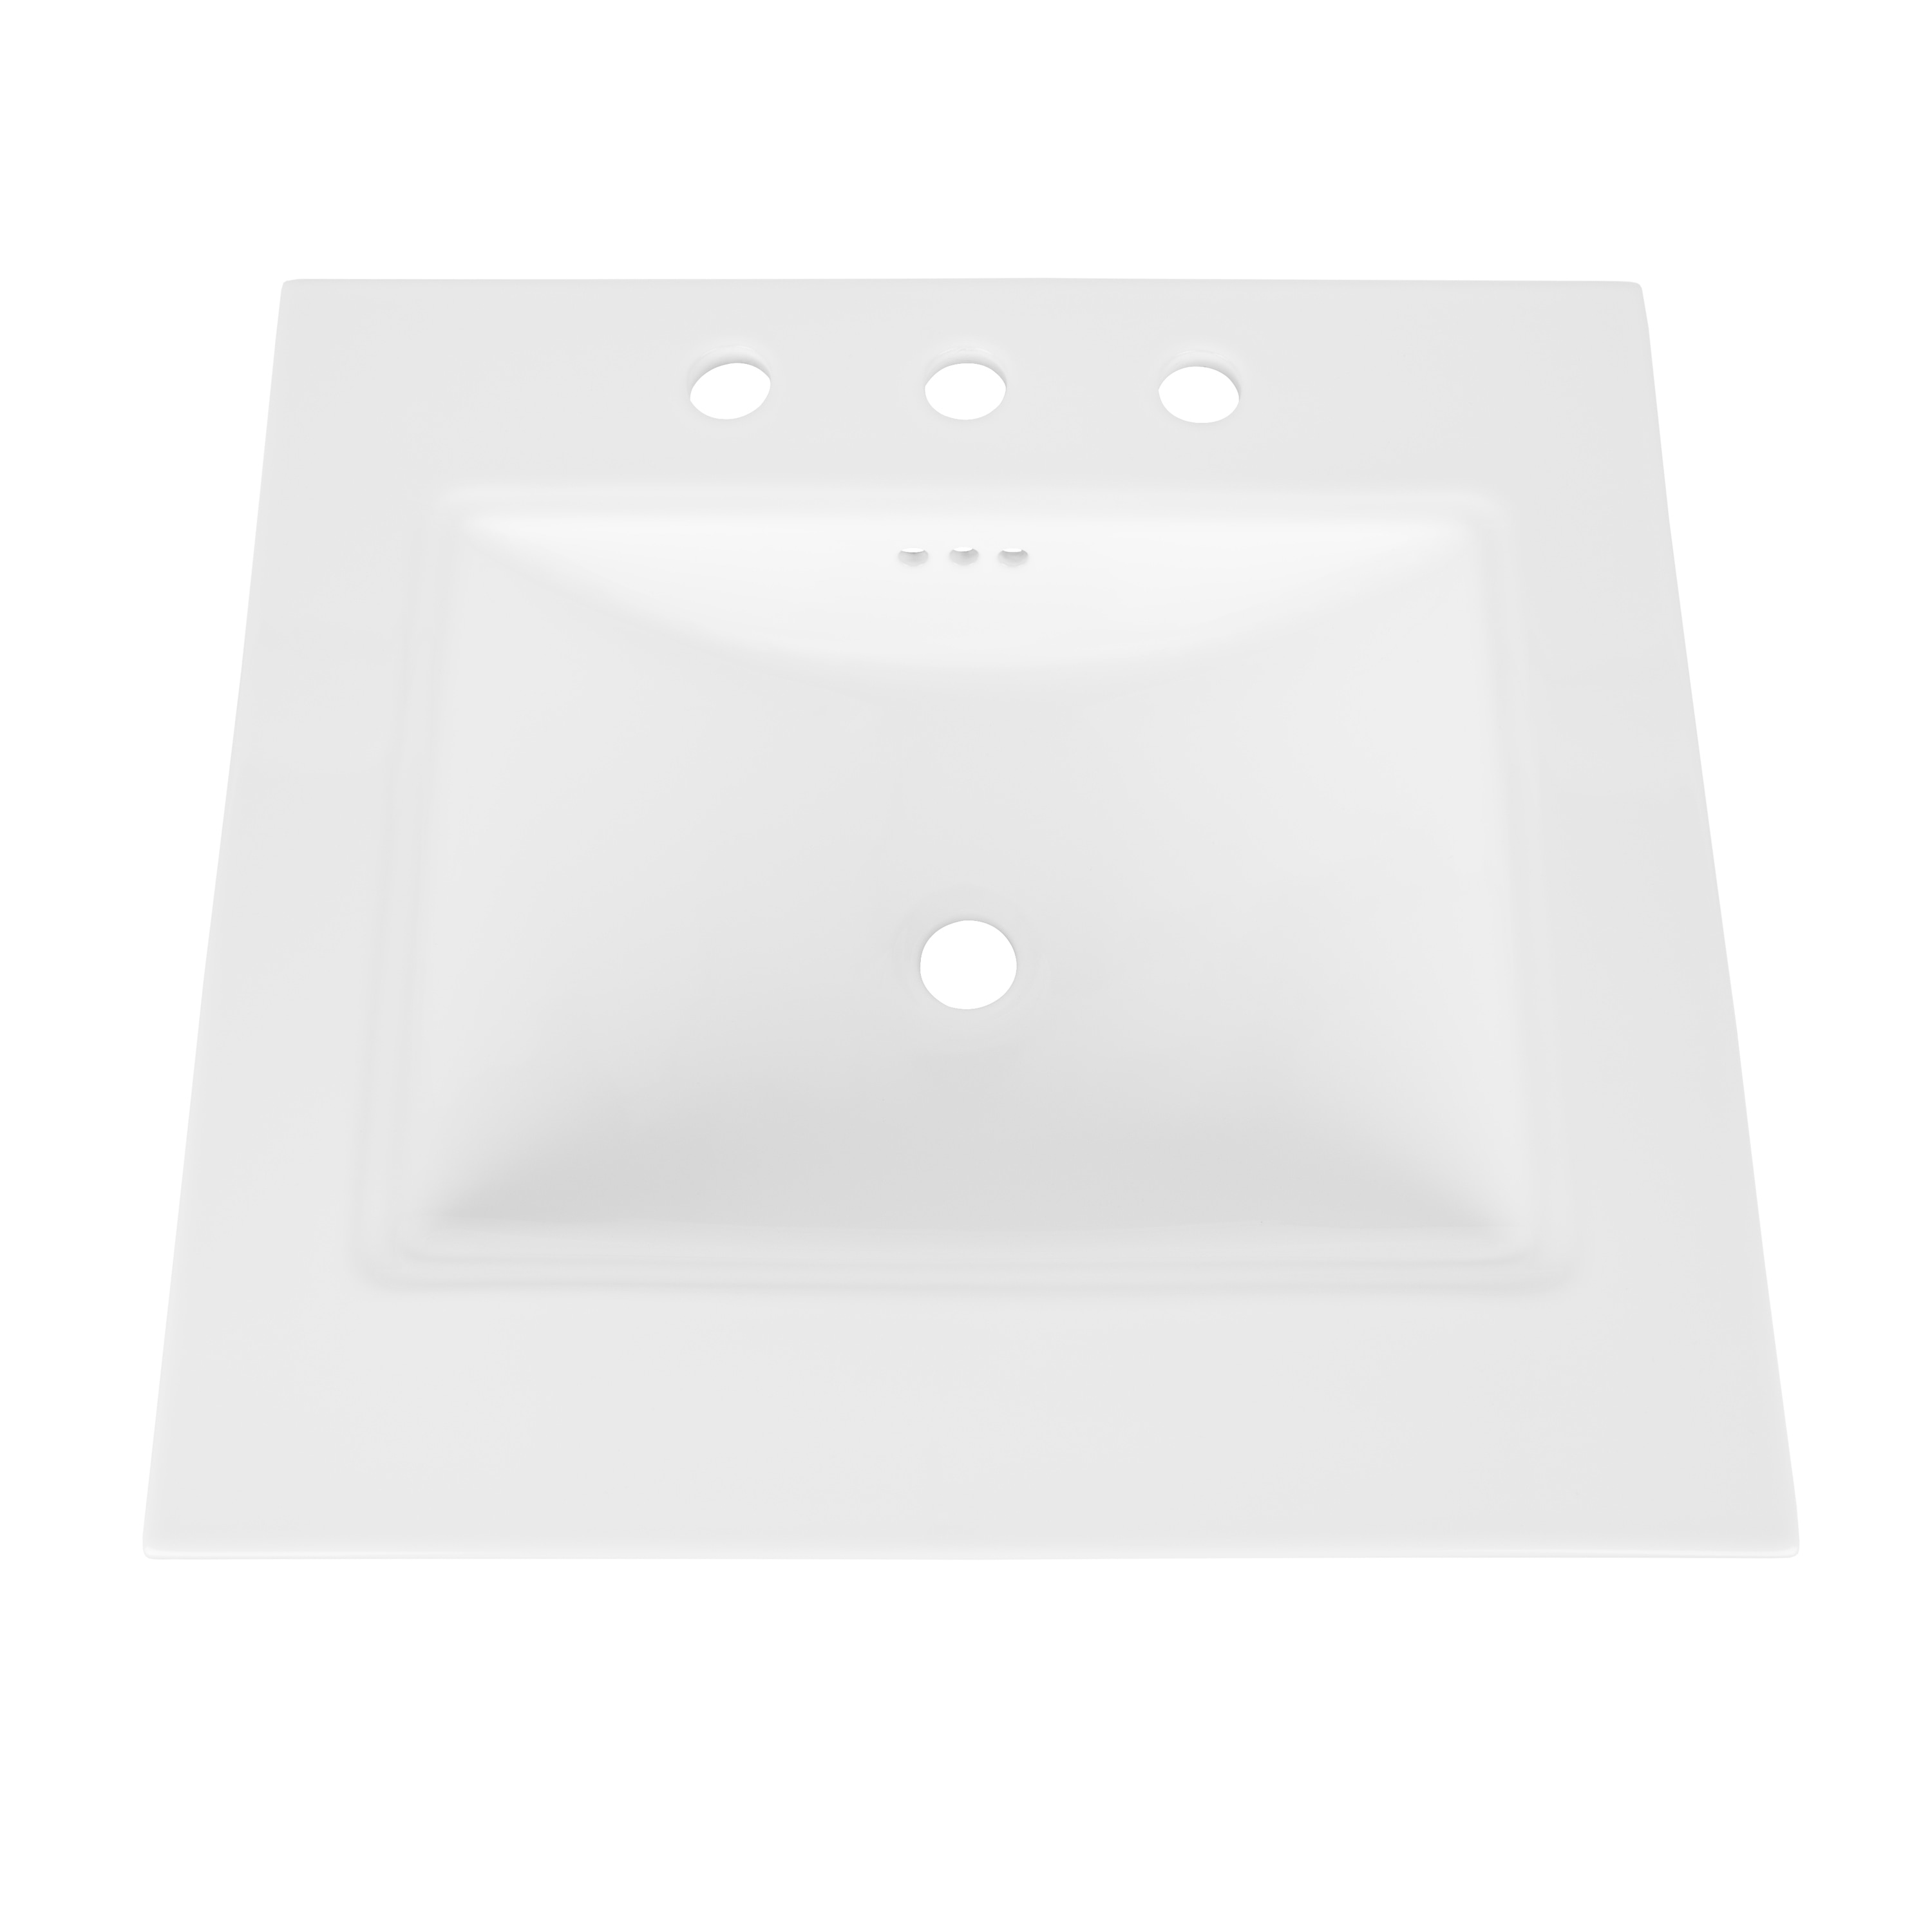 ronbow monterey 25 inch bathroom sink top in white with overflow